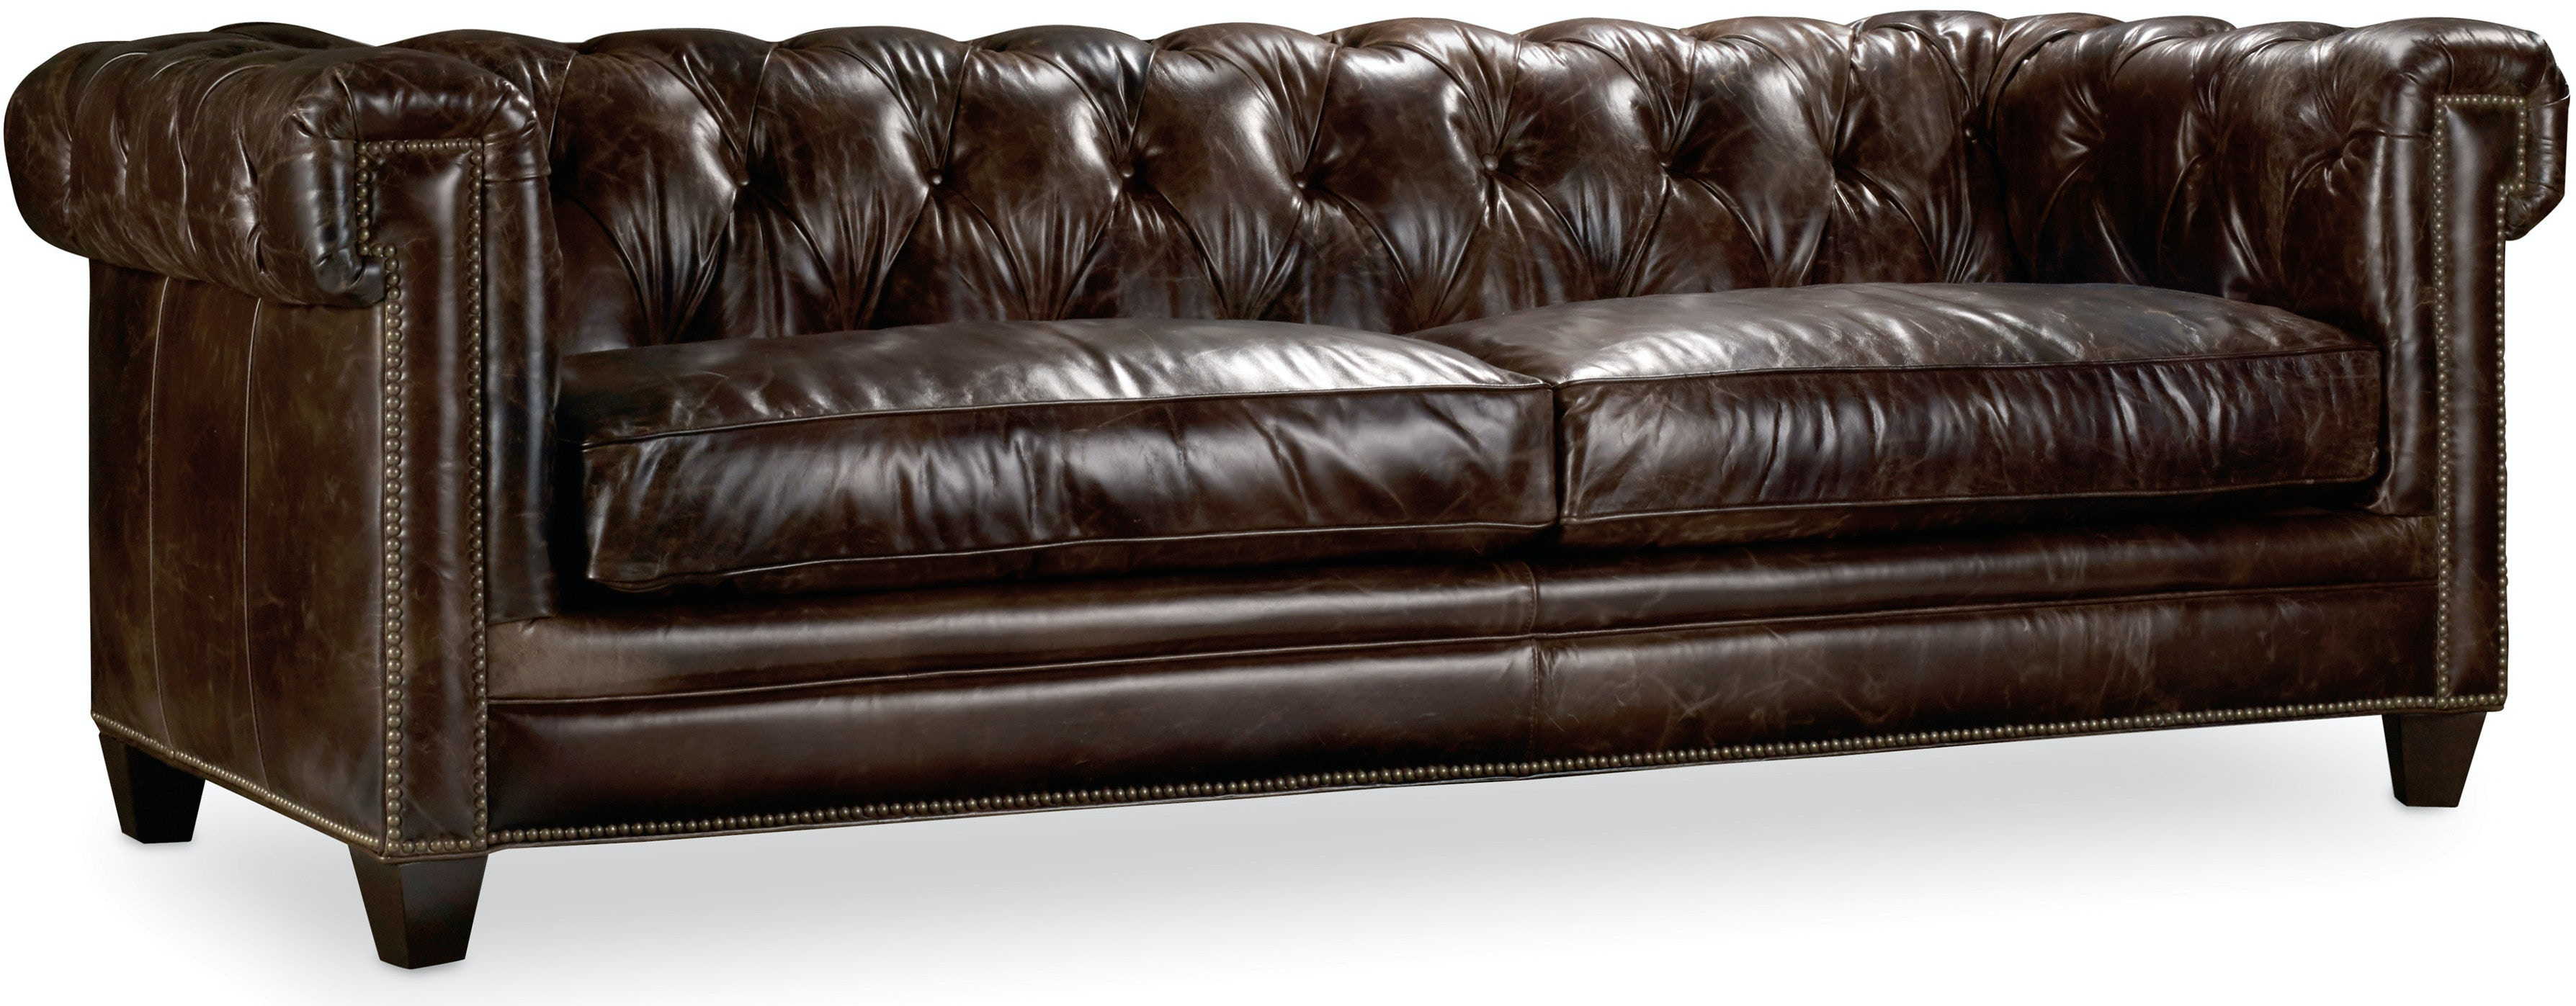 Sofas Chester Chester Sofas Compact Sofa Brown Leather